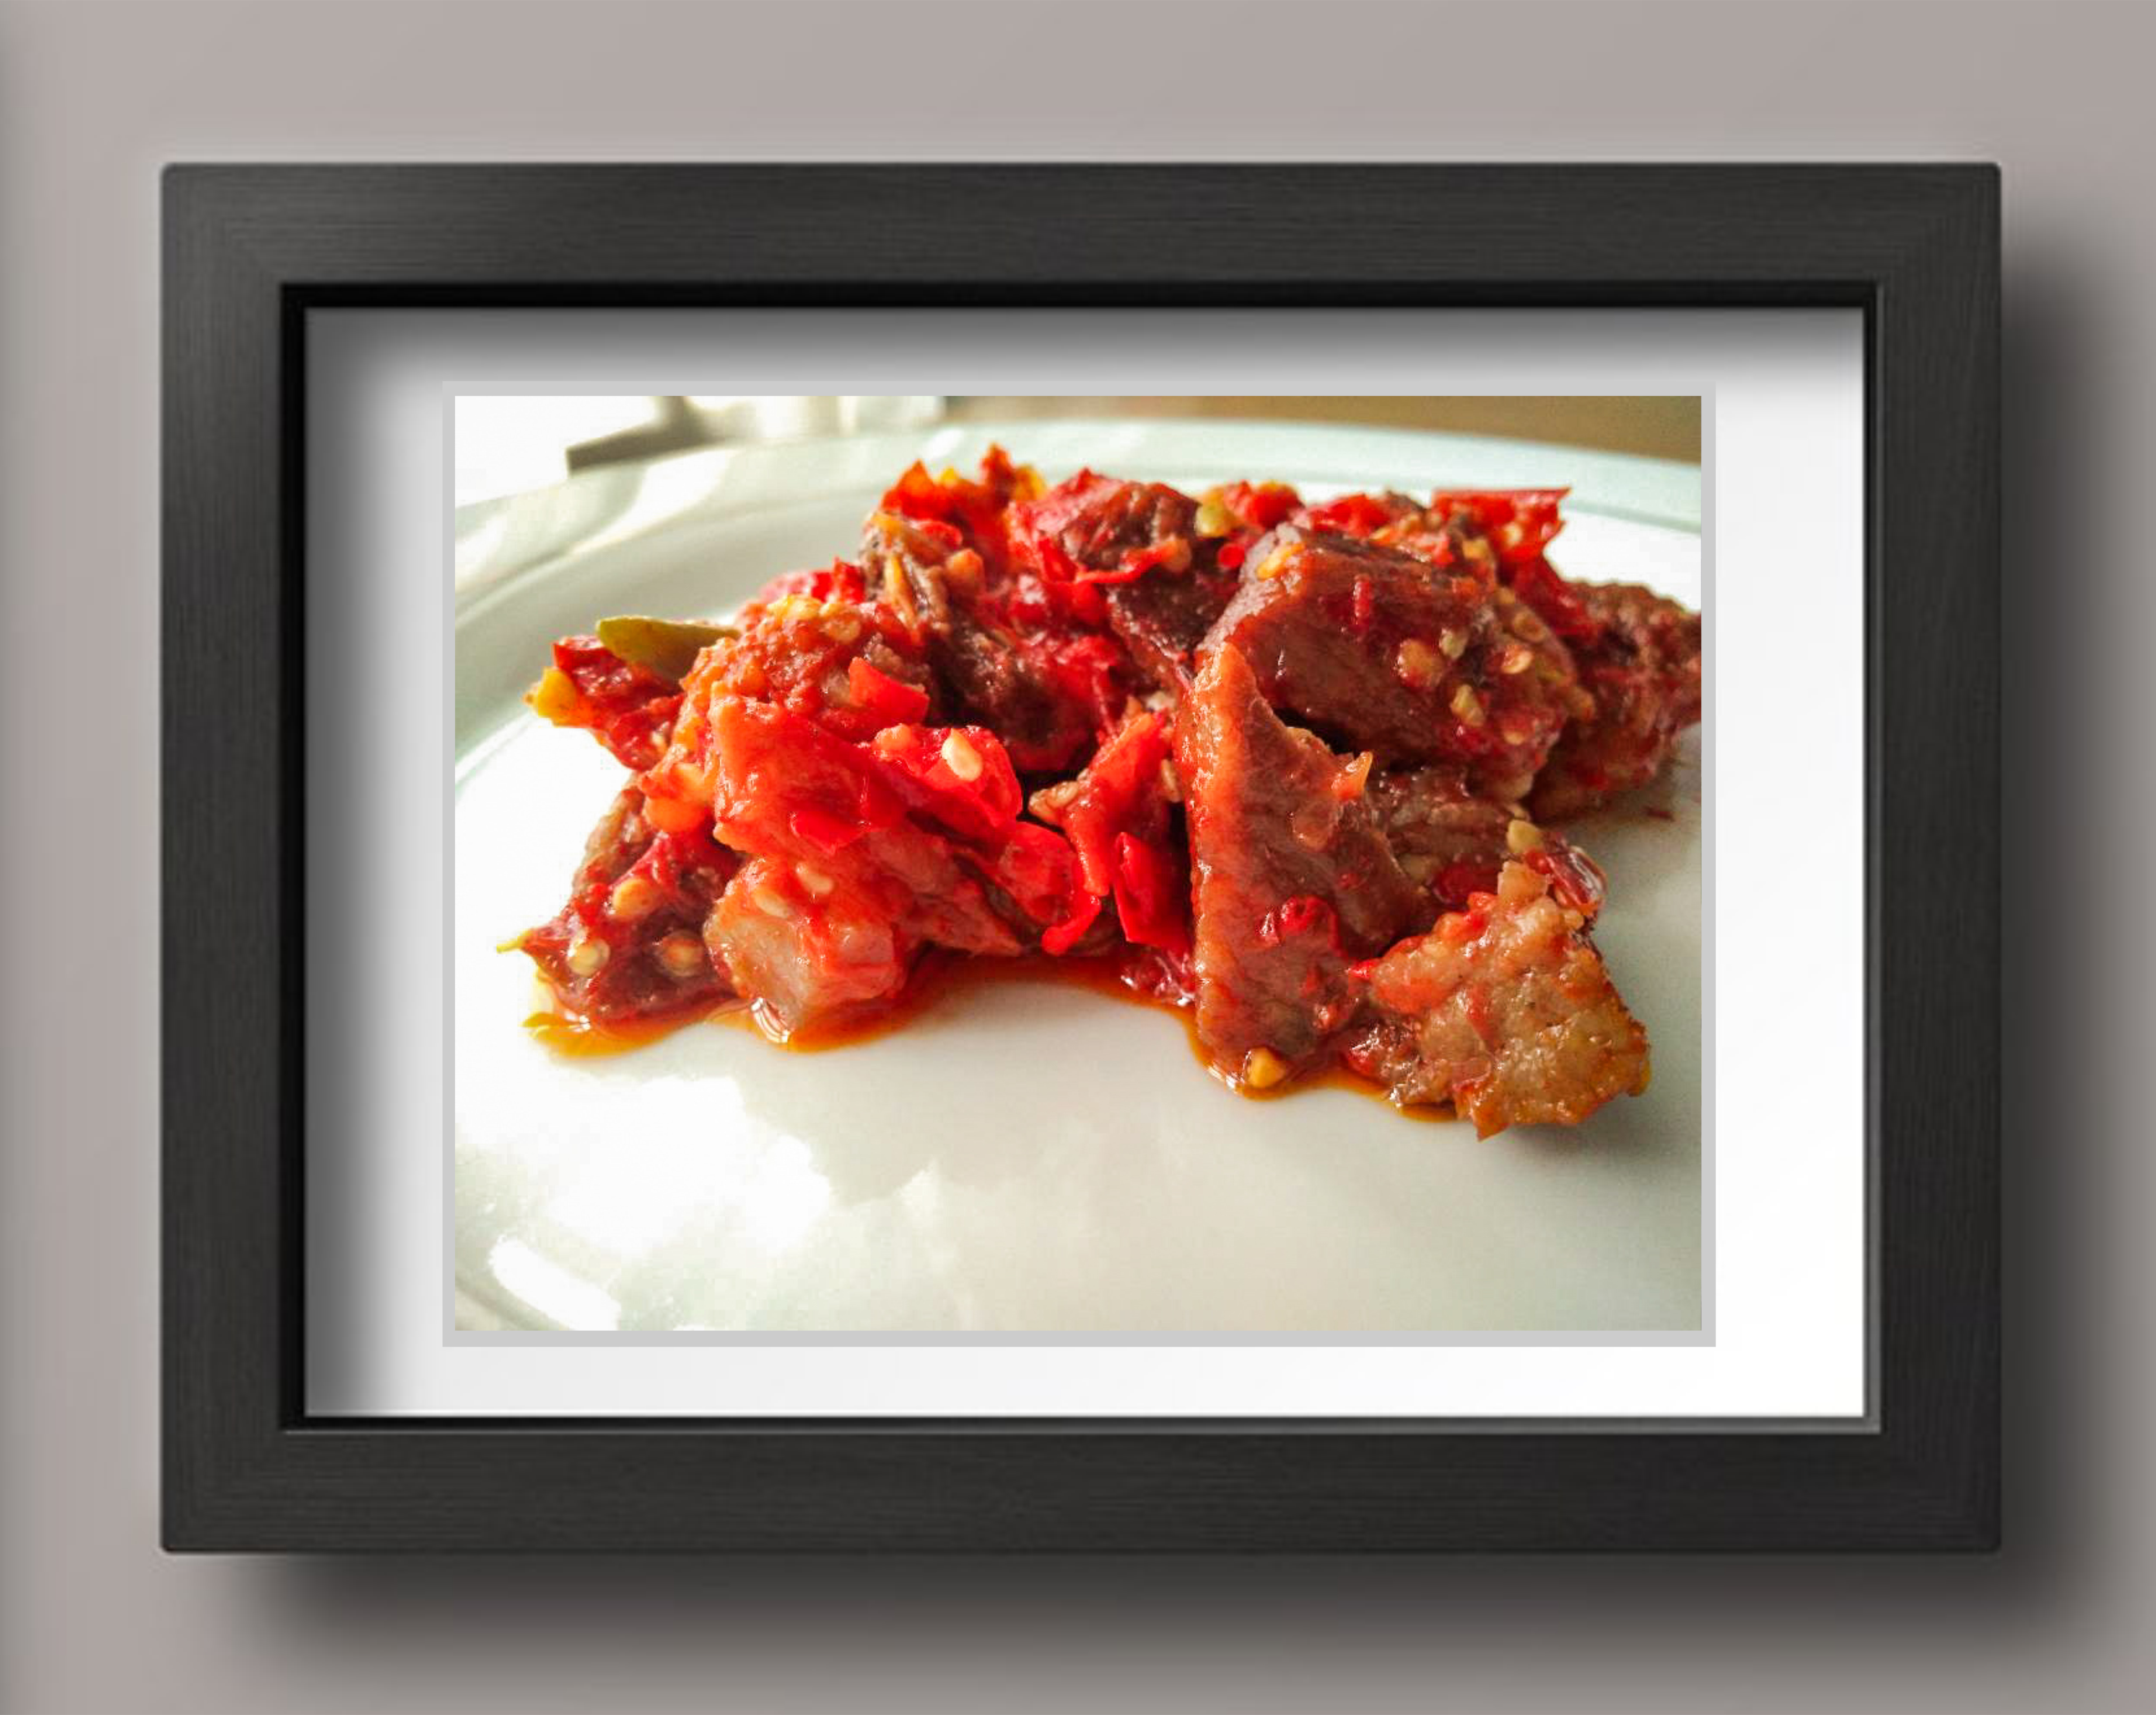 Meat Balad Sambal - Indonesian Food Graphic Food & Drinks By koekprojects